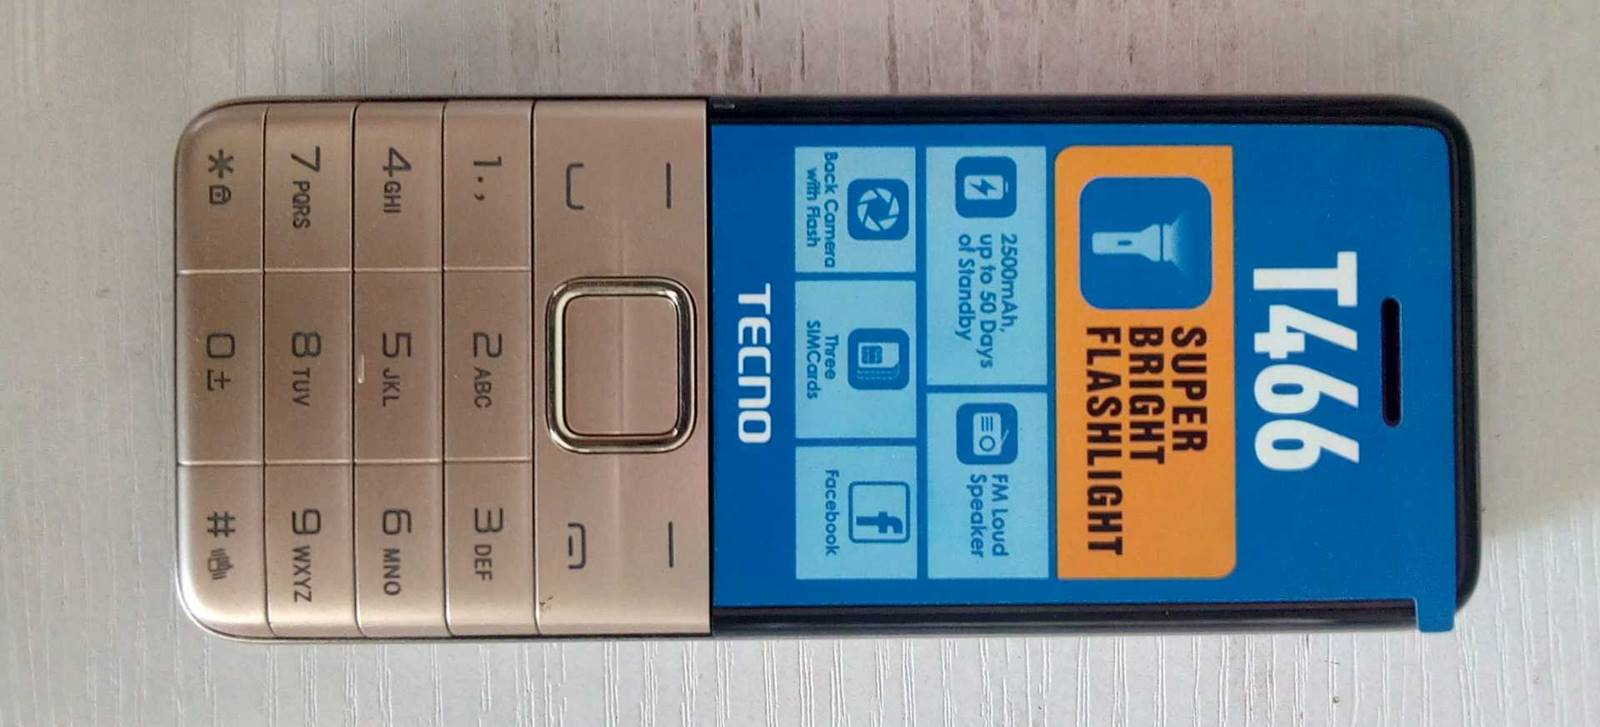 Tecno T466 Full Device Specifications, Review, Price and Where to Buy